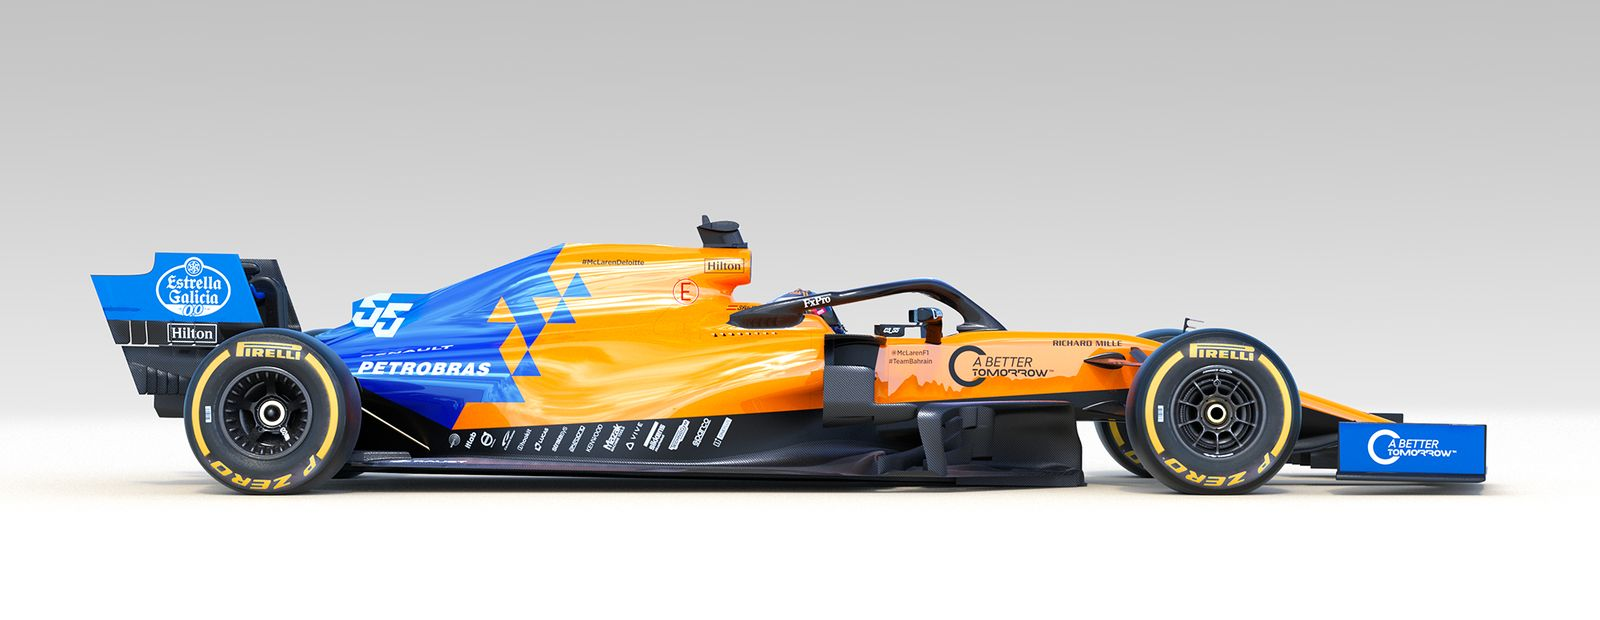 mclaren formula 1 – official website